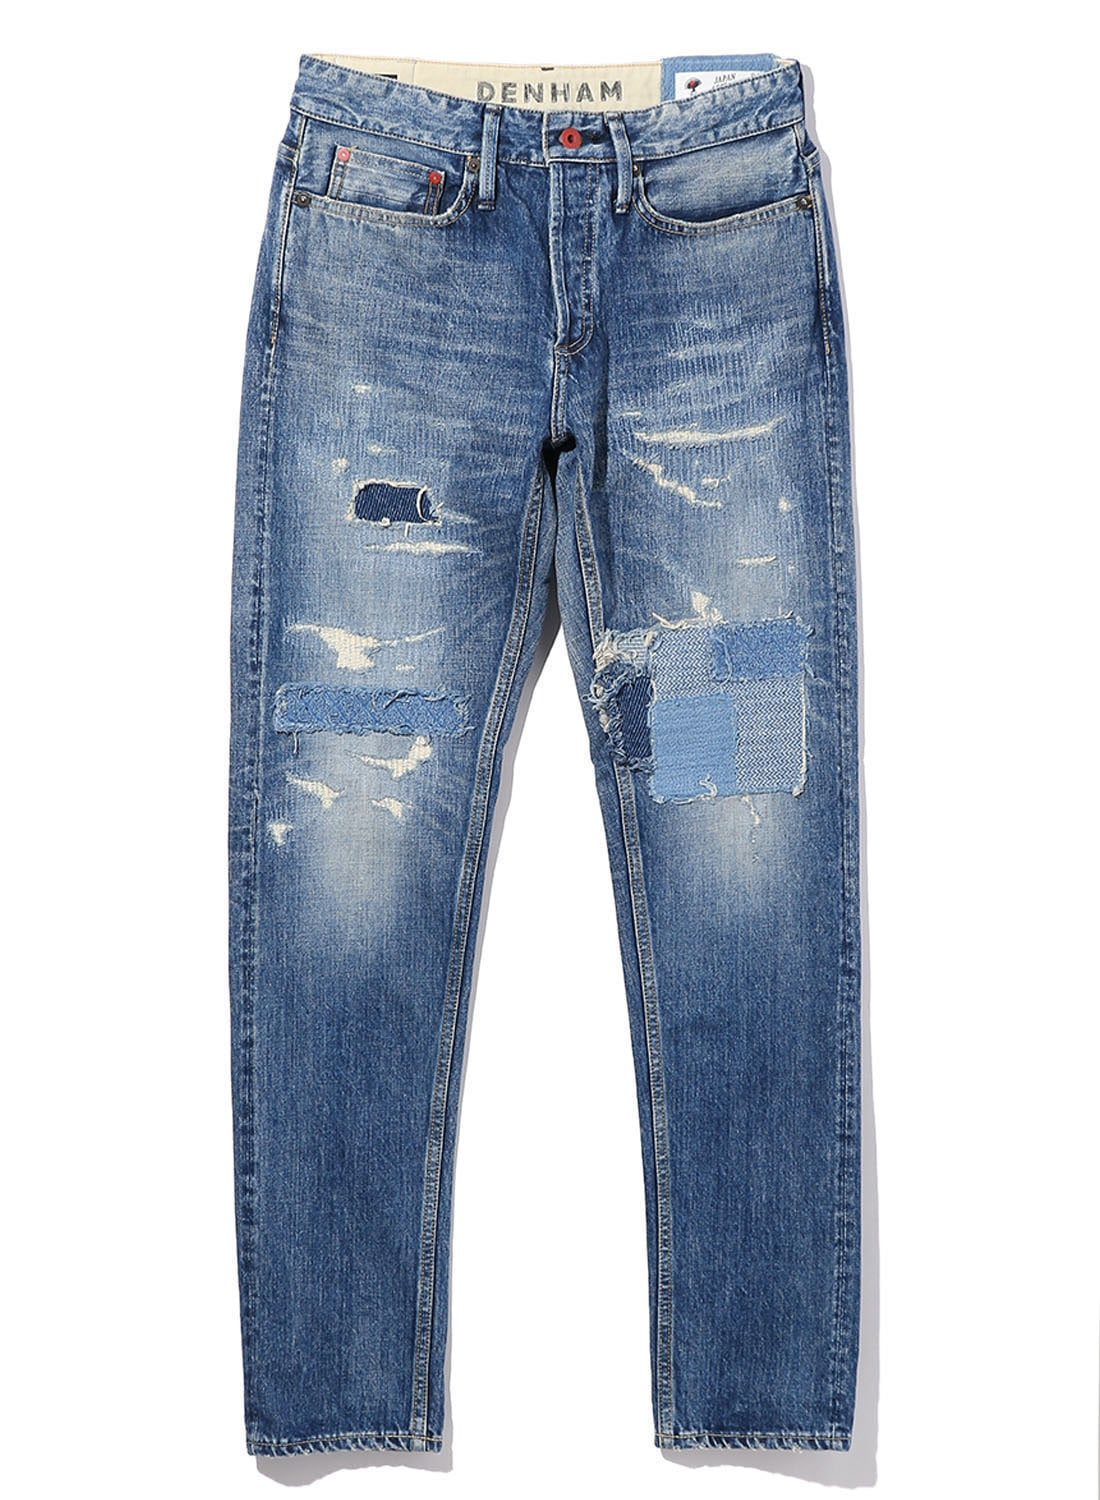 【MADE IN JAPAN DENIM】 FORGE MIJBUR